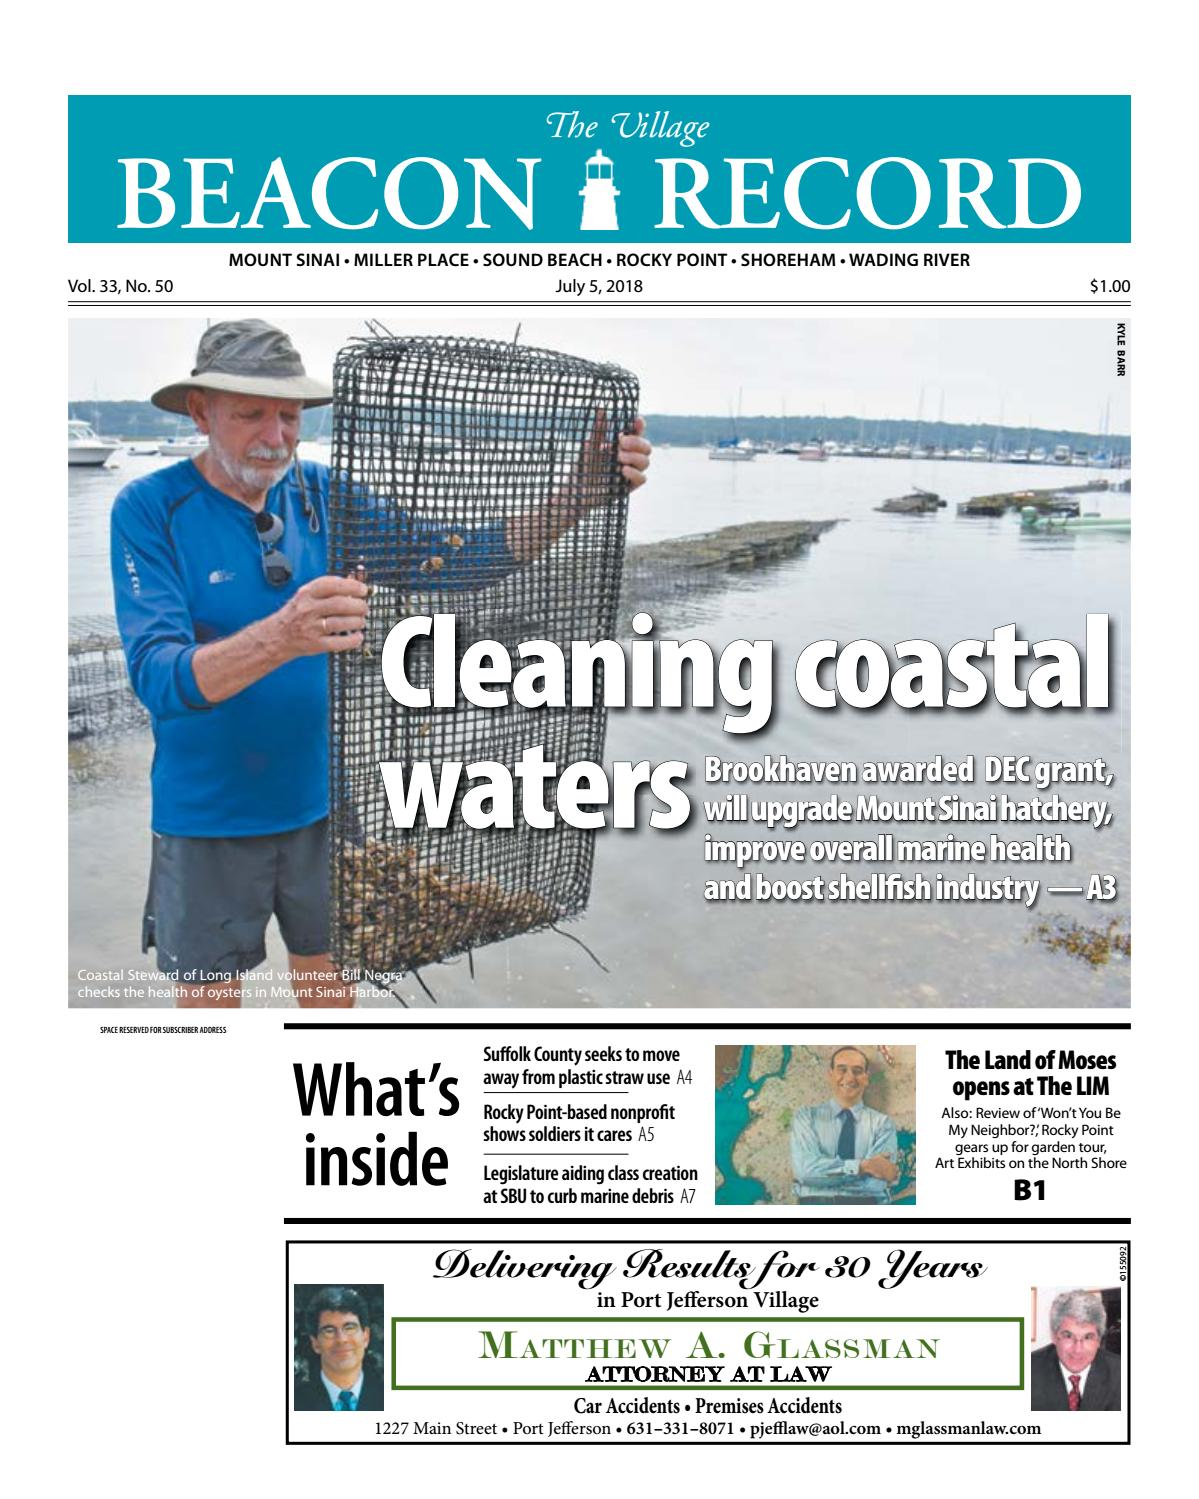 The Village Beacon Record - July 5, 2018 by TBR News Media